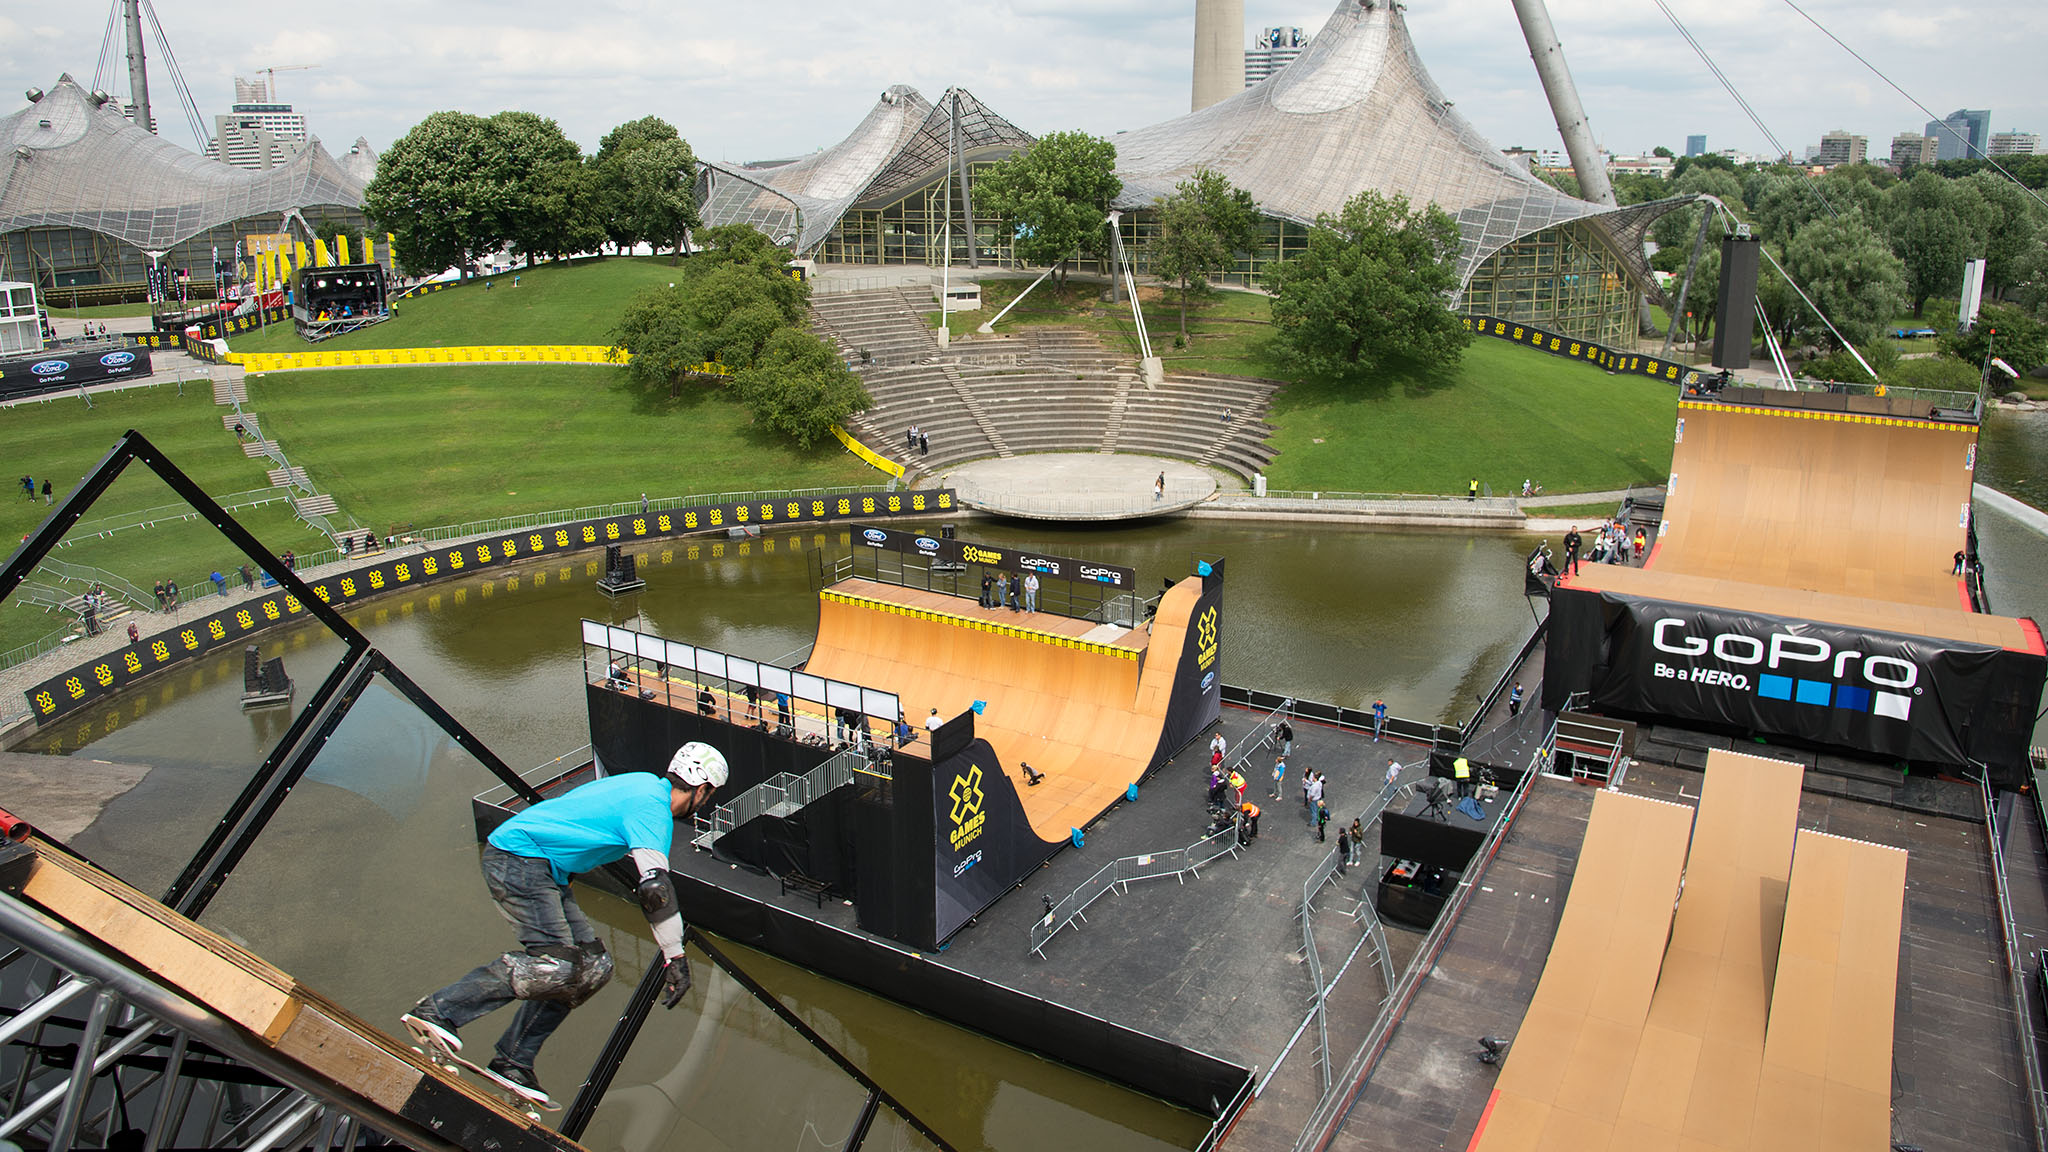 X Games will use a majority of the venues at Munich's Olympiapark for the first time since the 1972 Munich Olympics.